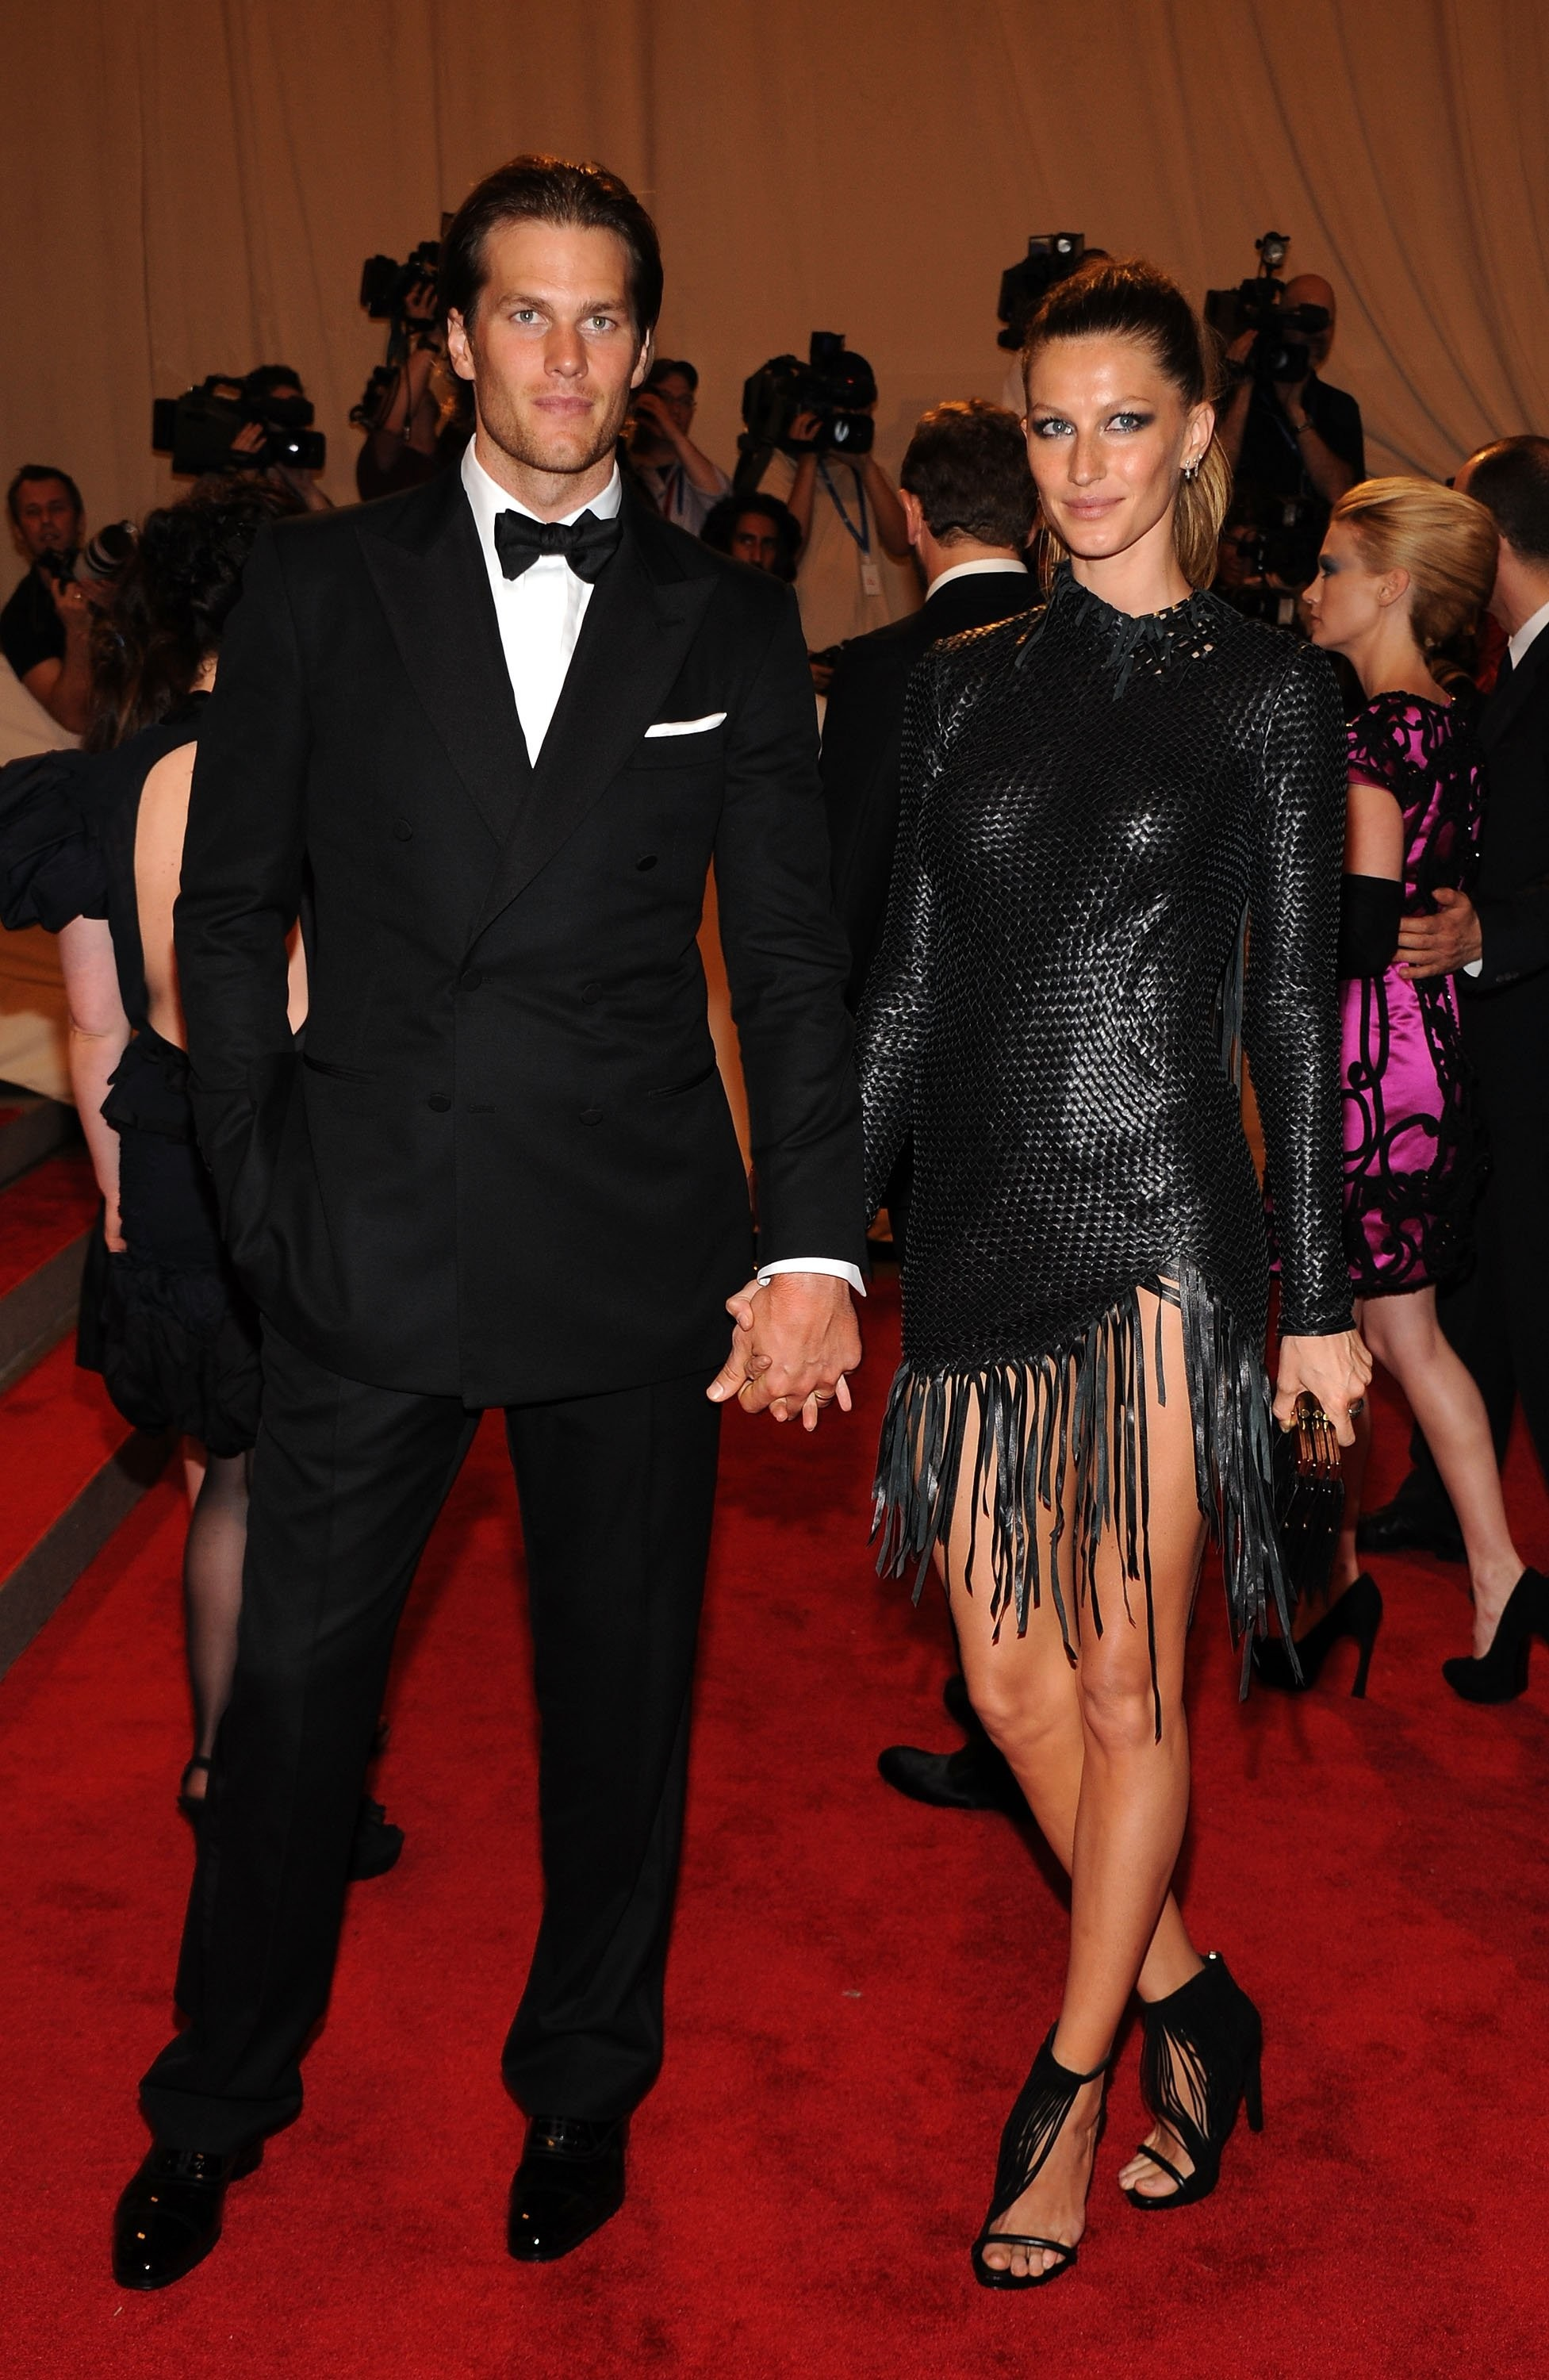 Gisele Bundchen, de Alexander Wang, no Baile do Met de 2010 (Foto: Getty Images)